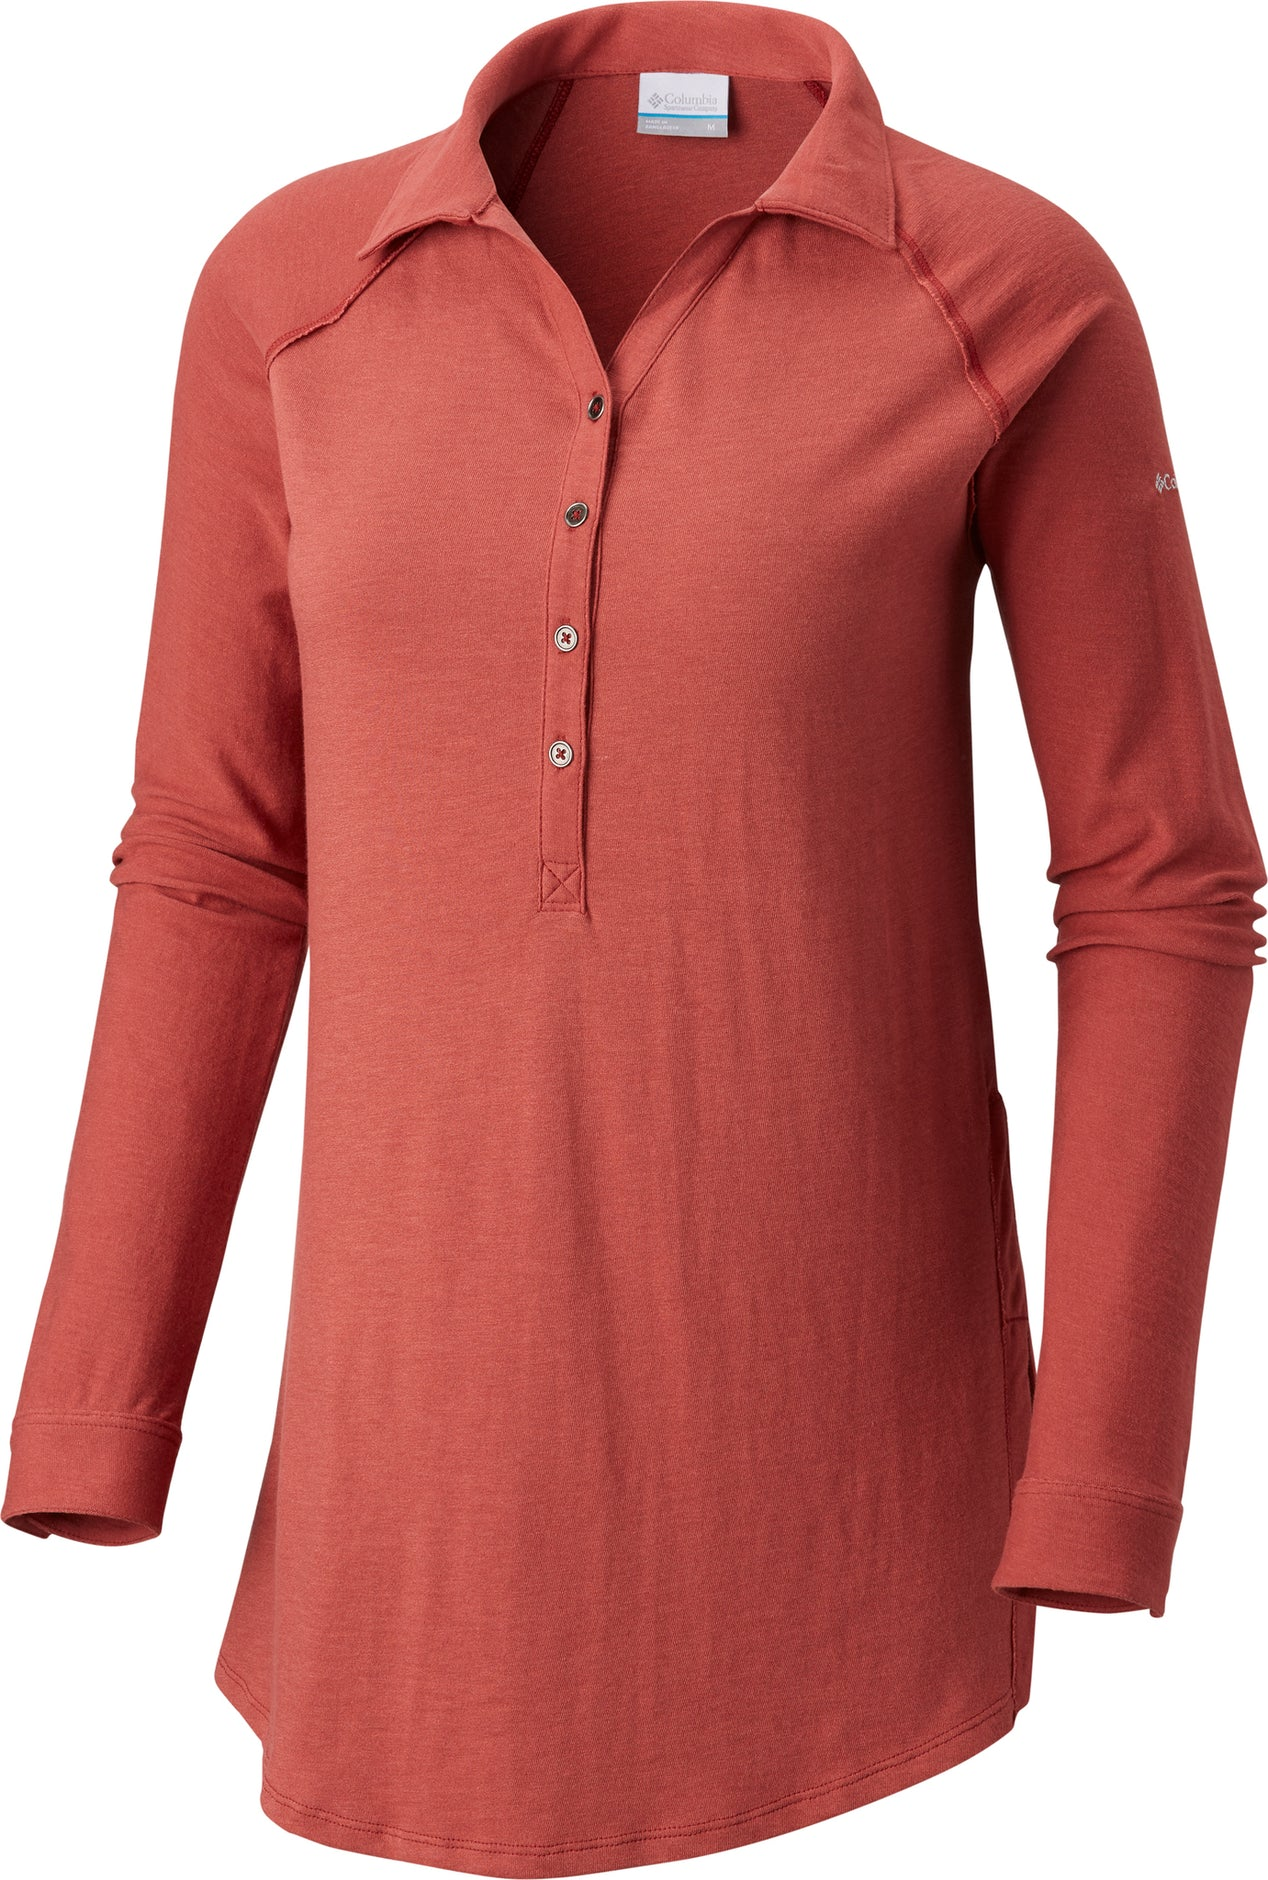 458b3e343d5 Columbia Easy Going Long Sleeve Shirt - Women's | The Last Hunt